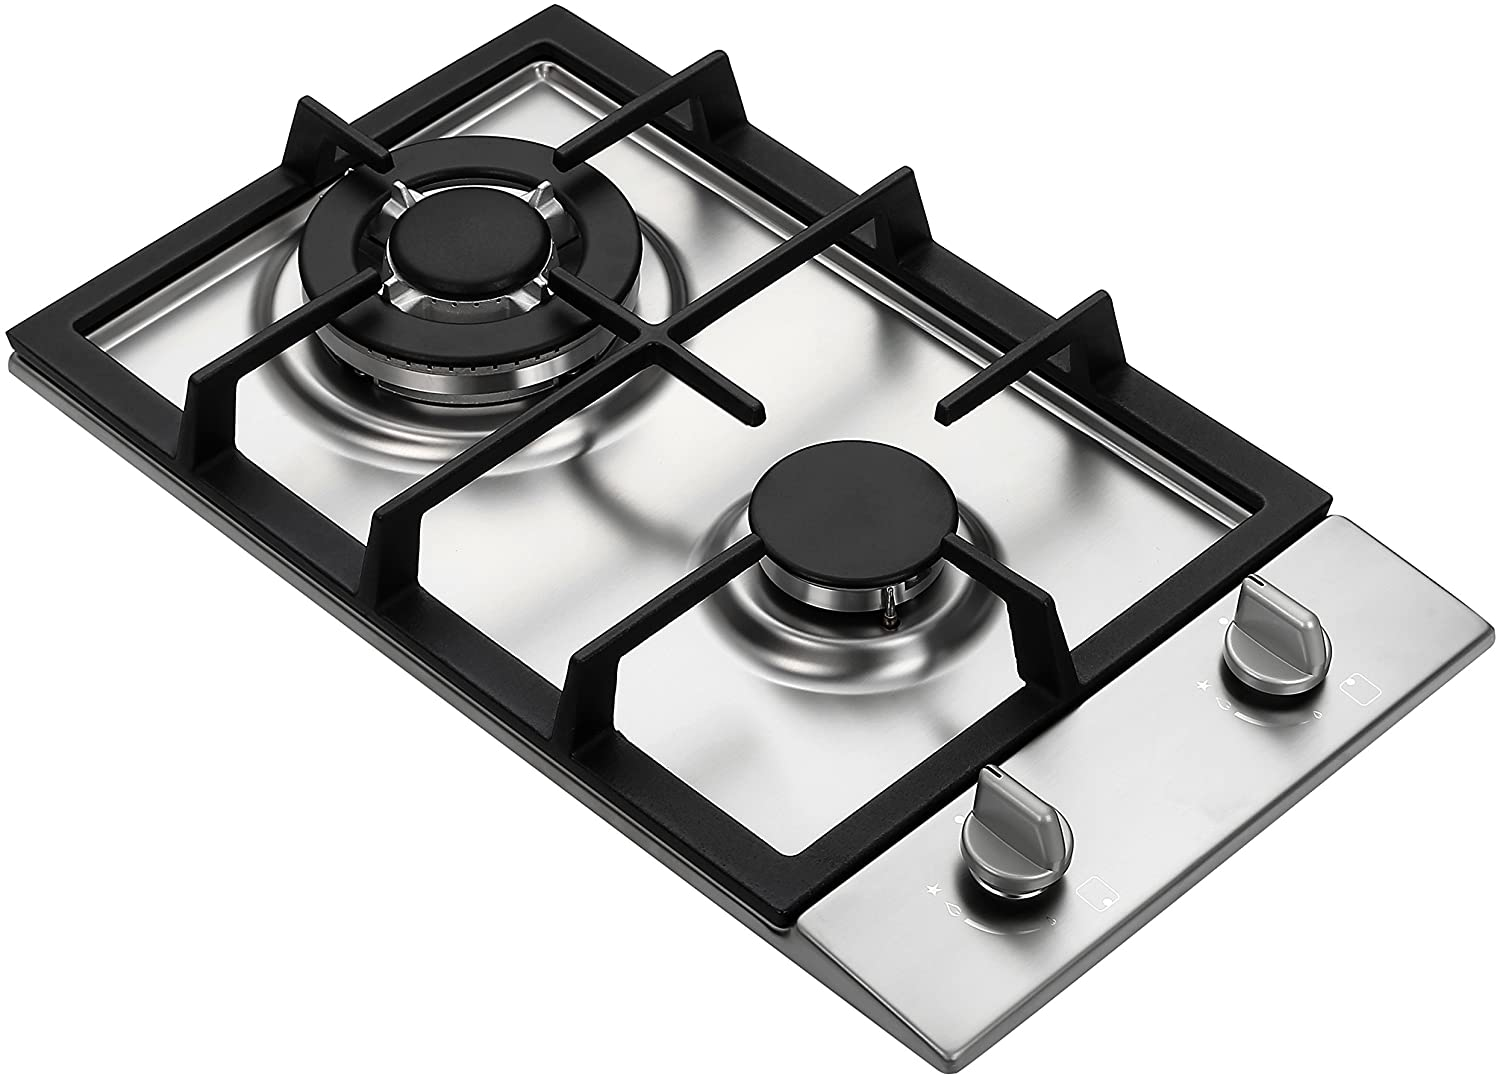 Amazon.com: Ramblewood GC2-37P - Placa de cocina de gas de ...